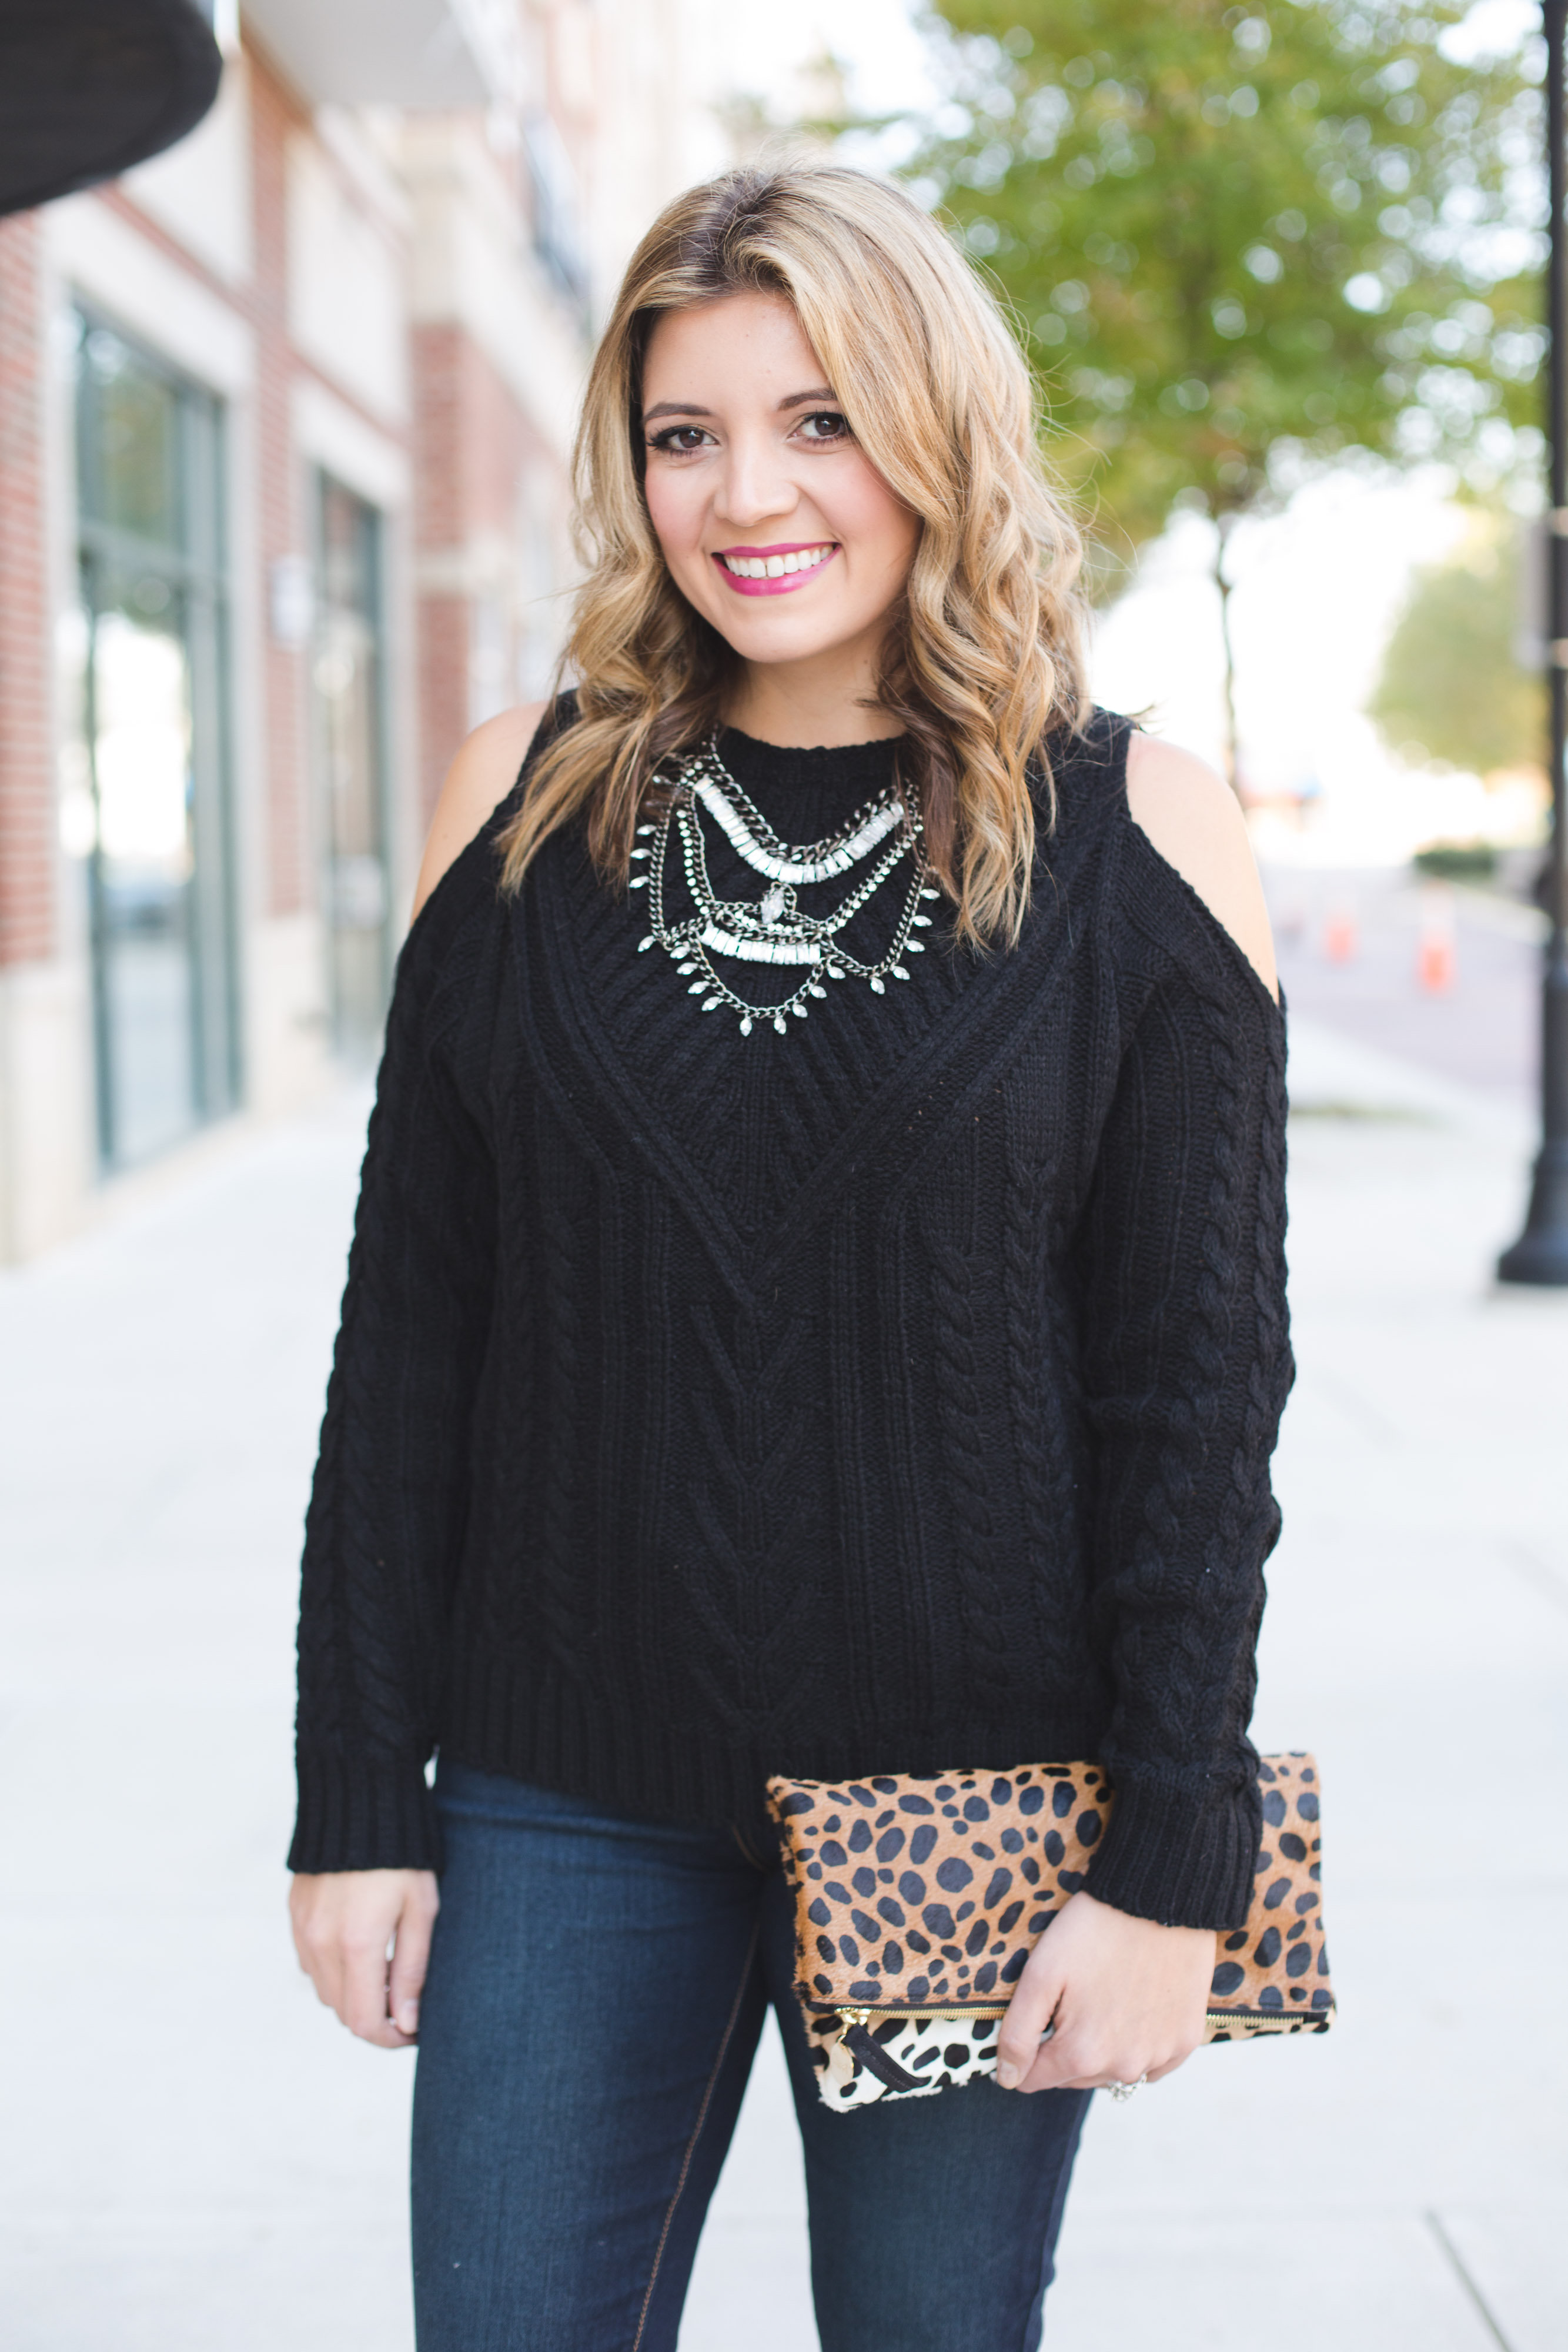 cold shoulder sweater with crystal statement necklace | www.bylaurenm.com